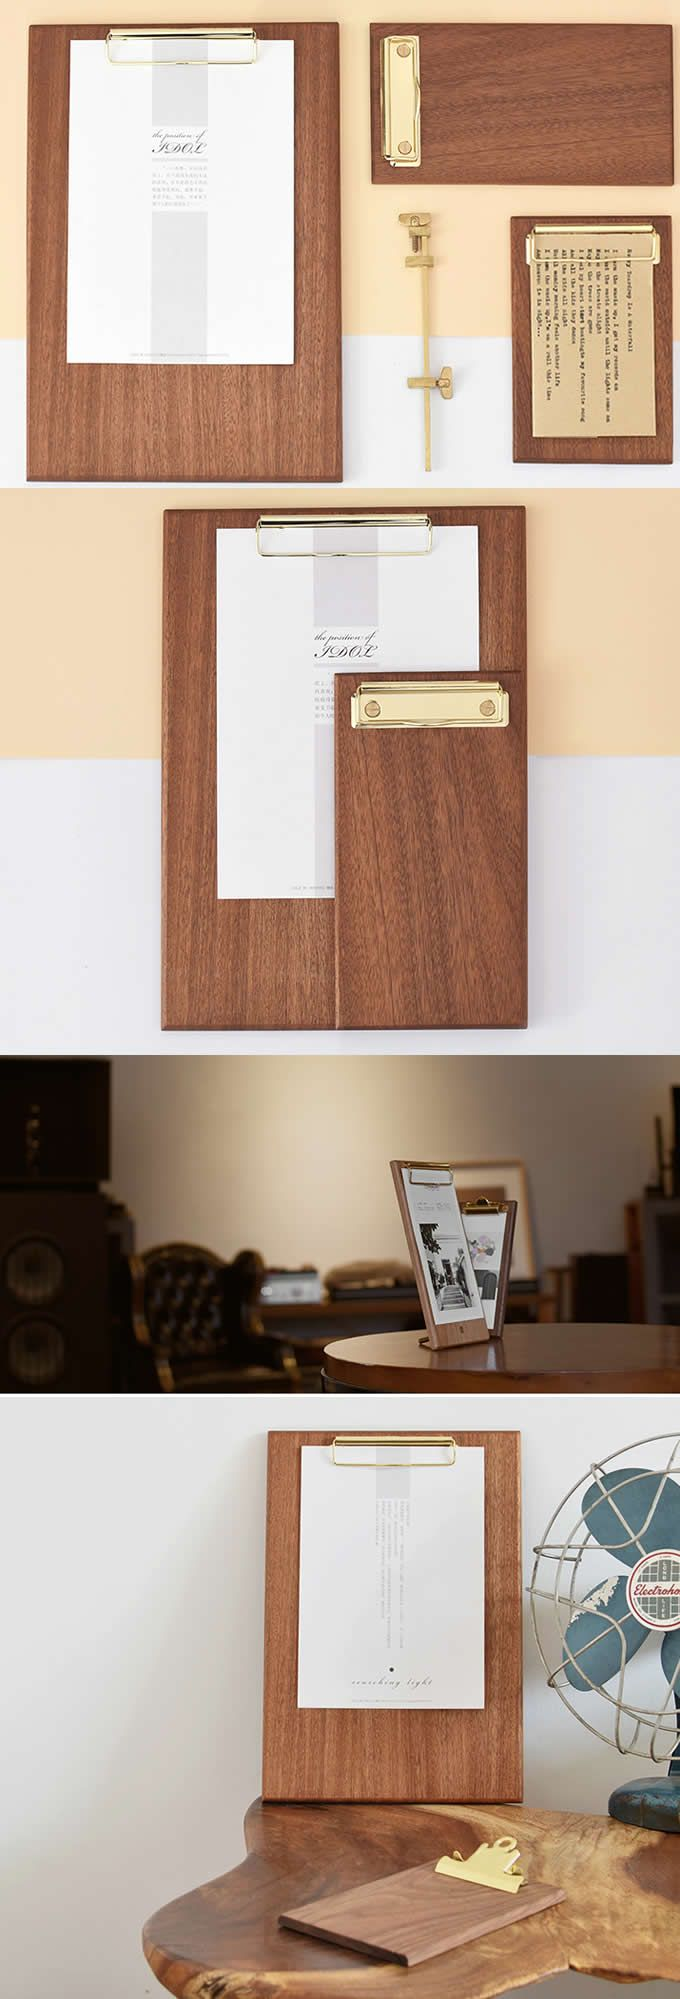 Wooden Folder Clip Clipboard Frame To Display Pictures Artwork Or